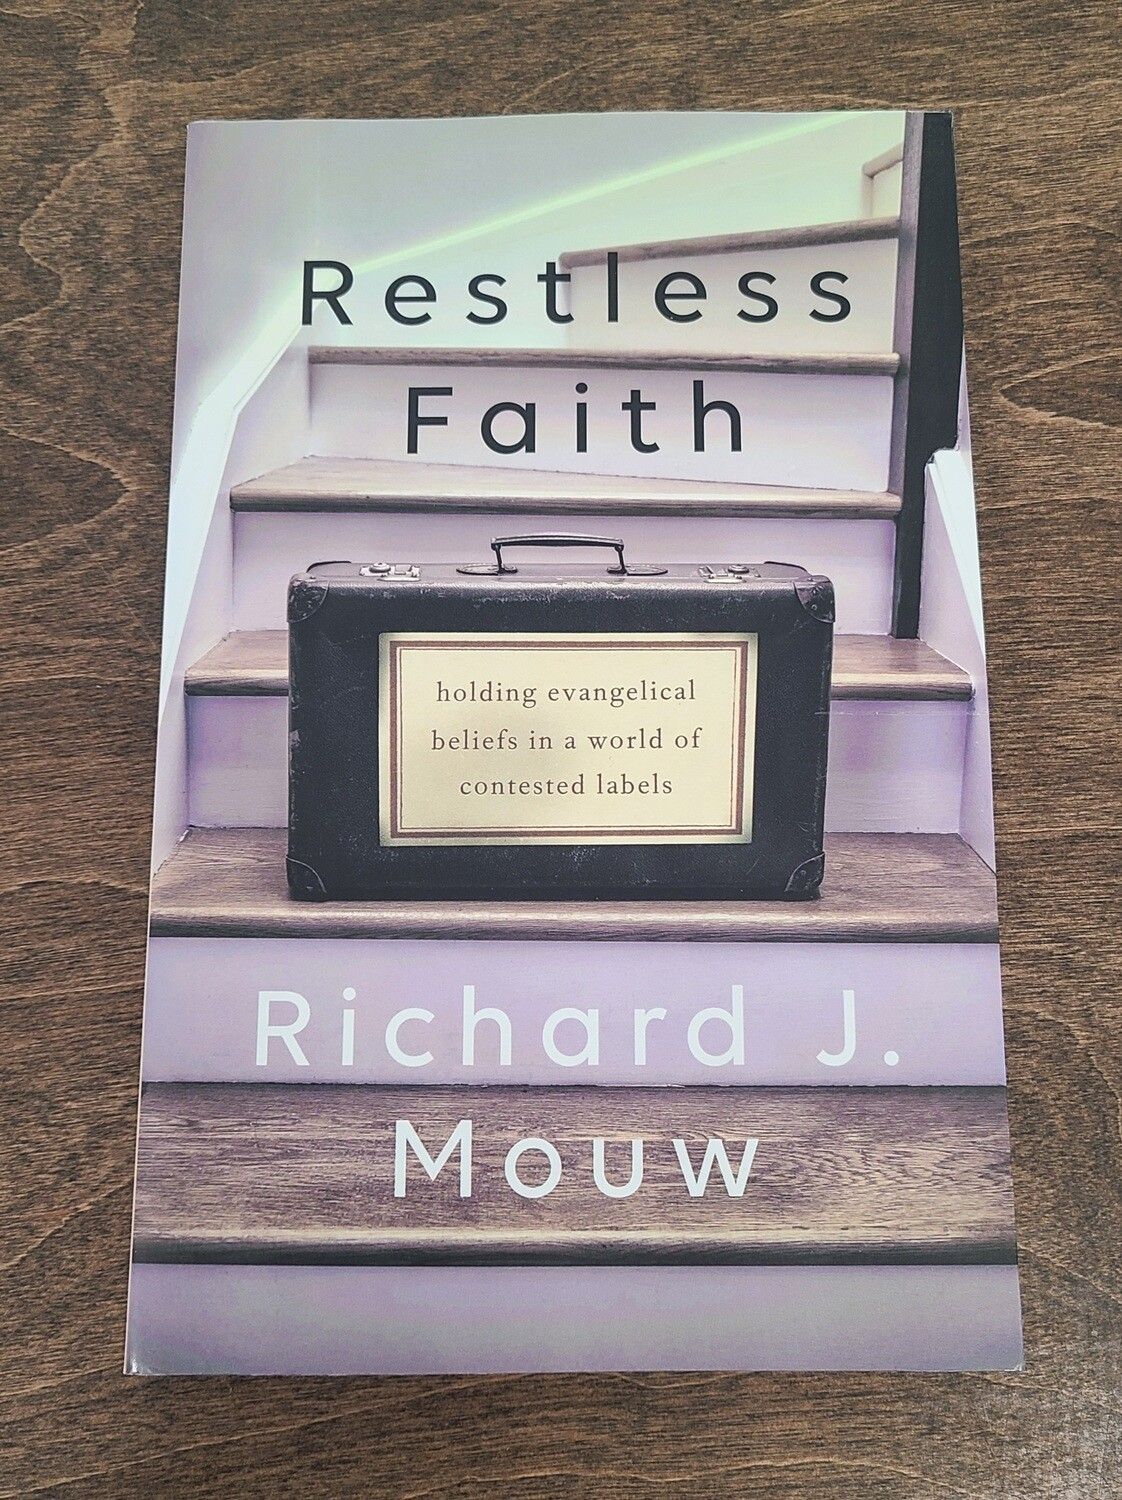 Restless Faith: Holding Evangelical Beliefs in a World of Contested Labels by Richard J. Mouw